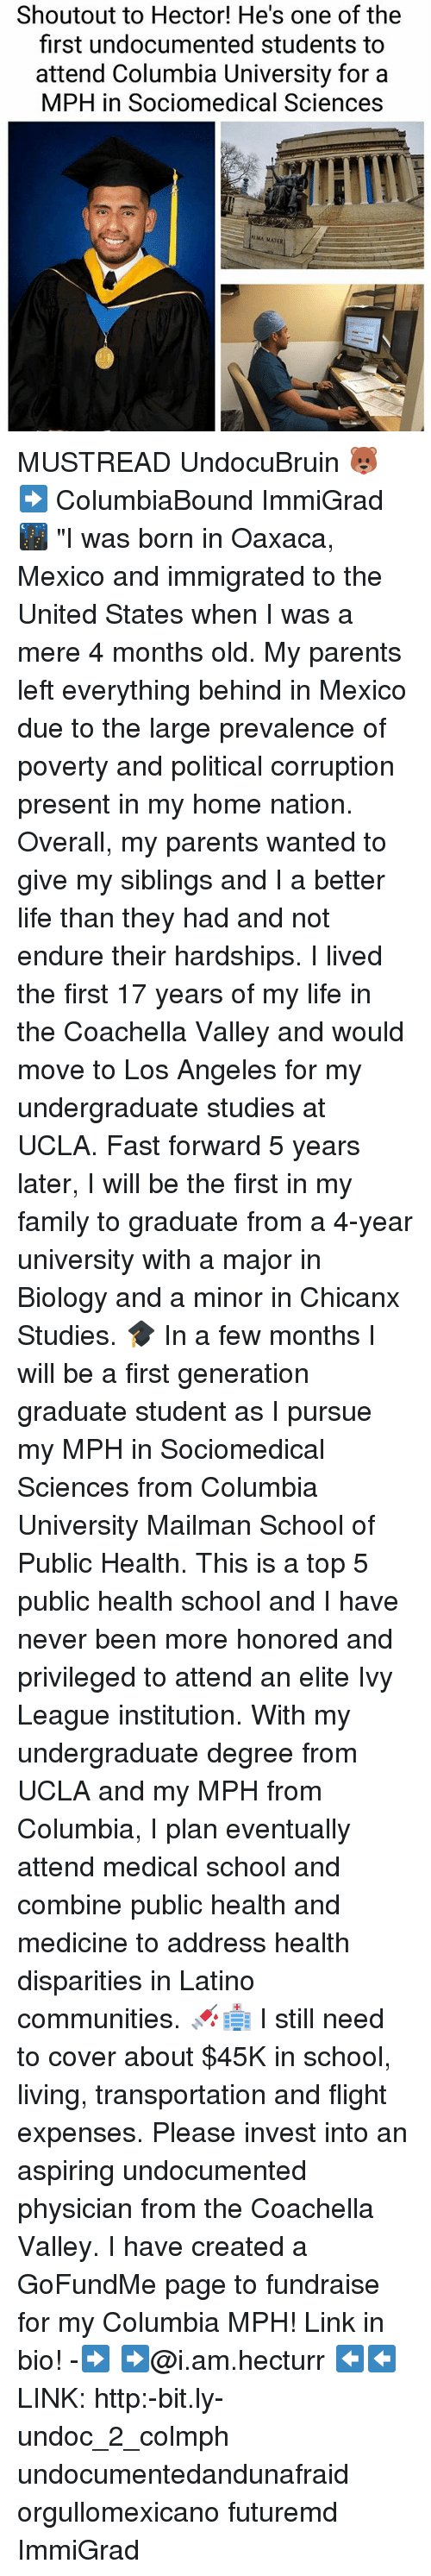 "Coachella, Family, and Life: Shoutout to Hector! He's one of the  first undocumented students to  attend Columbia University for a  MPH in Sociomedical Sciences  ALMA MATER MUSTREAD UndocuBruin 🐻 ➡️ ColumbiaBound ImmiGrad 🌃 ""I was born in Oaxaca, Mexico and immigrated to the United States when I was a mere 4 months old. My parents left everything behind in Mexico due to the large prevalence of poverty and political corruption present in my home nation. Overall, my parents wanted to give my siblings and I a better life than they had and not endure their hardships. I lived the first 17 years of my life in the Coachella Valley and would move to Los Angeles for my undergraduate studies at UCLA. Fast forward 5 years later, I will be the first in my family to graduate from a 4-year university with a major in Biology and a minor in Chicanx Studies. 🎓 In a few months I will be a first generation graduate student as I pursue my MPH in Sociomedical Sciences from Columbia University Mailman School of Public Health. This is a top 5 public health school and I have never been more honored and privileged to attend an elite Ivy League institution. With my undergraduate degree from UCLA and my MPH from Columbia, I plan eventually attend medical school and combine public health and medicine to address health disparities in Latino communities. 💉🏥 I still need to cover about $45K in school, living, transportation and flight expenses. Please invest into an aspiring undocumented physician from the Coachella Valley. I have created a GoFundMe page to fundraise for my Columbia MPH! Link in bio! -➡️ ➡️@i.am.hecturr ⬅️⬅️LINK: http:-bit.ly-undoc_2_colmph undocumentedandunafraid orgullomexicano futuremd ImmiGrad"